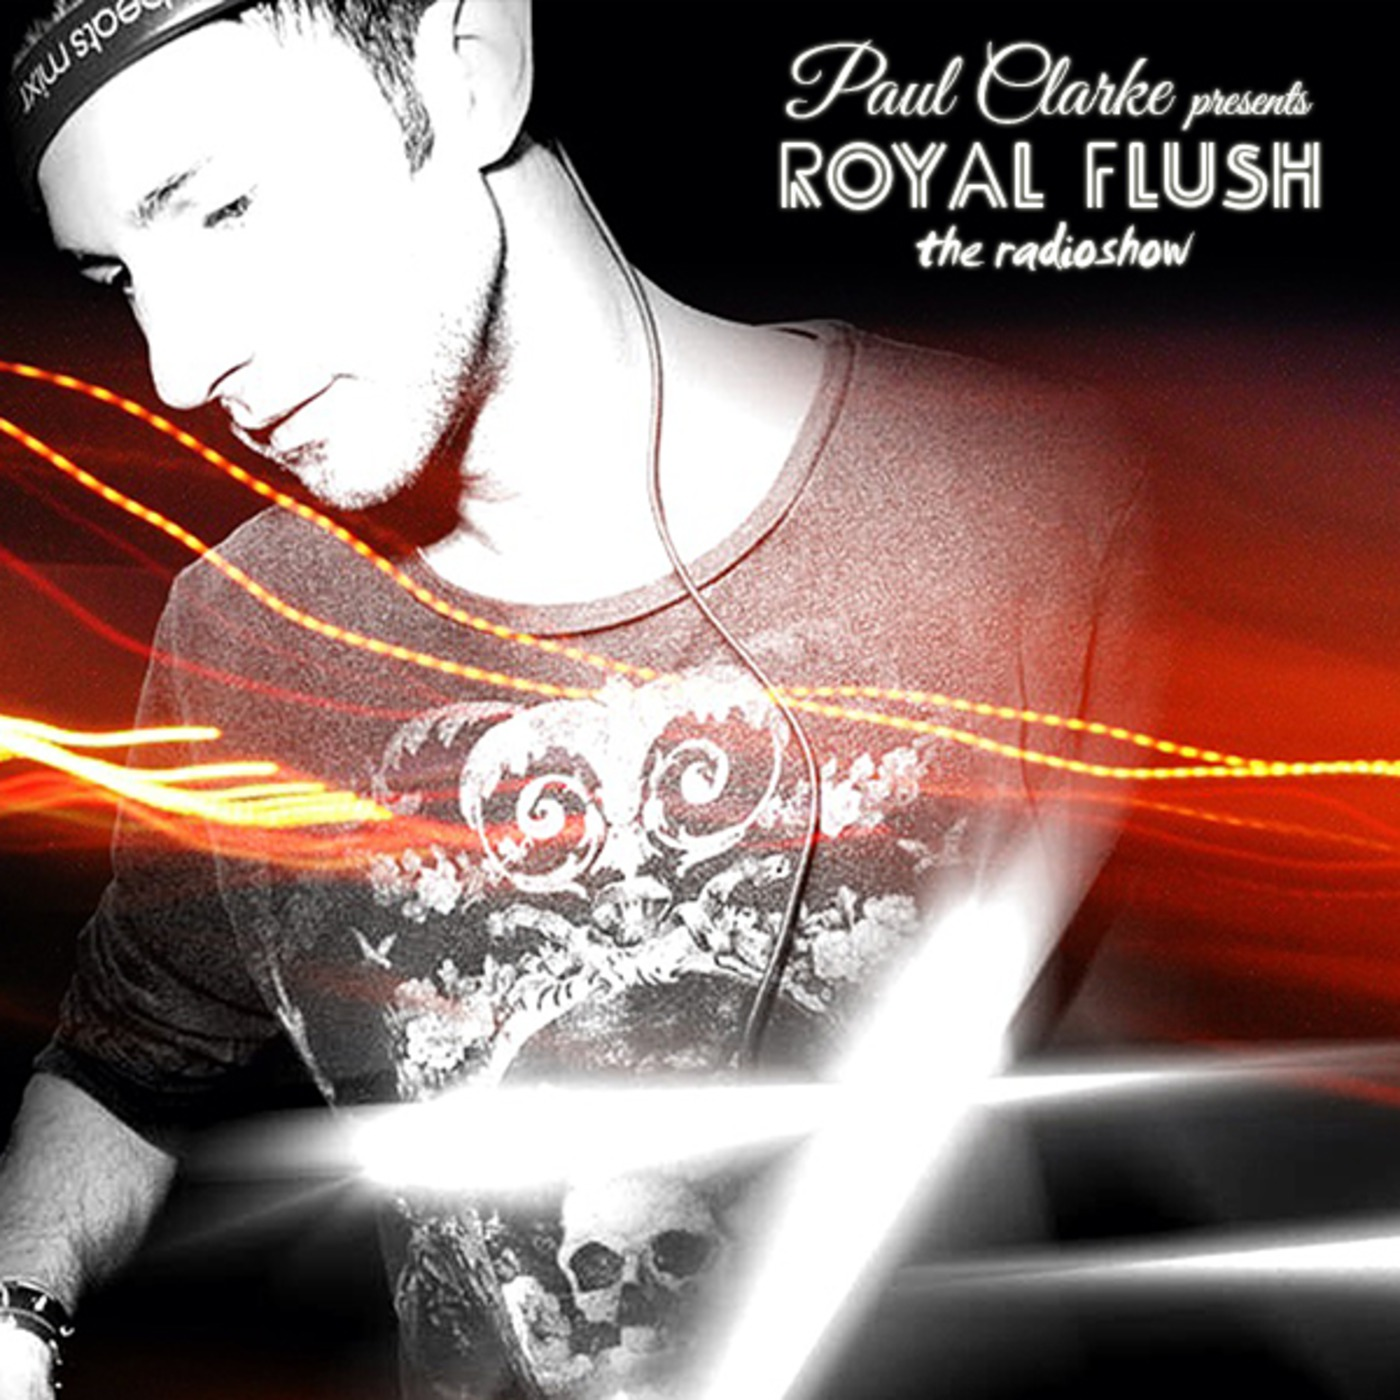 Paul Clarke pres. Royal Flush JAN 2k14